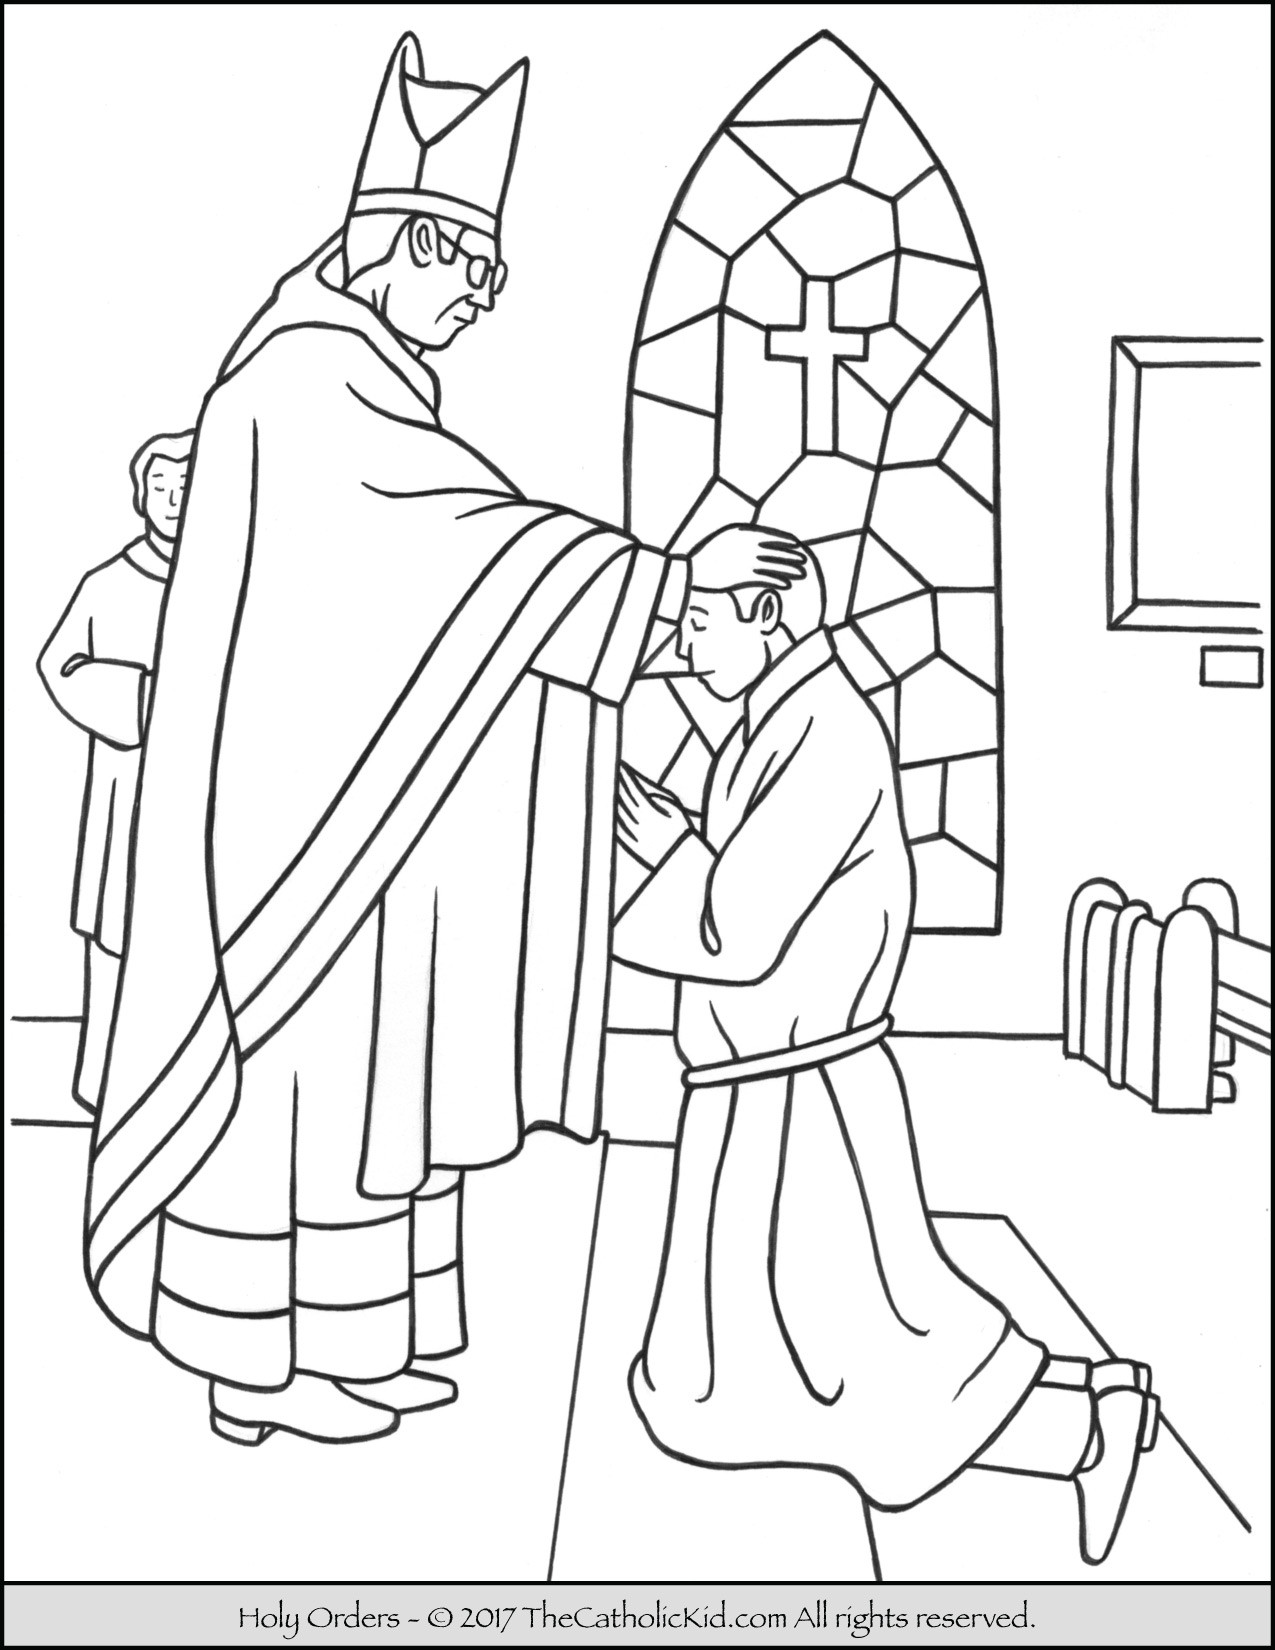 Catholic Coloring Books  Sacrament of Holy Orders Coloring Page TheCatholicKid